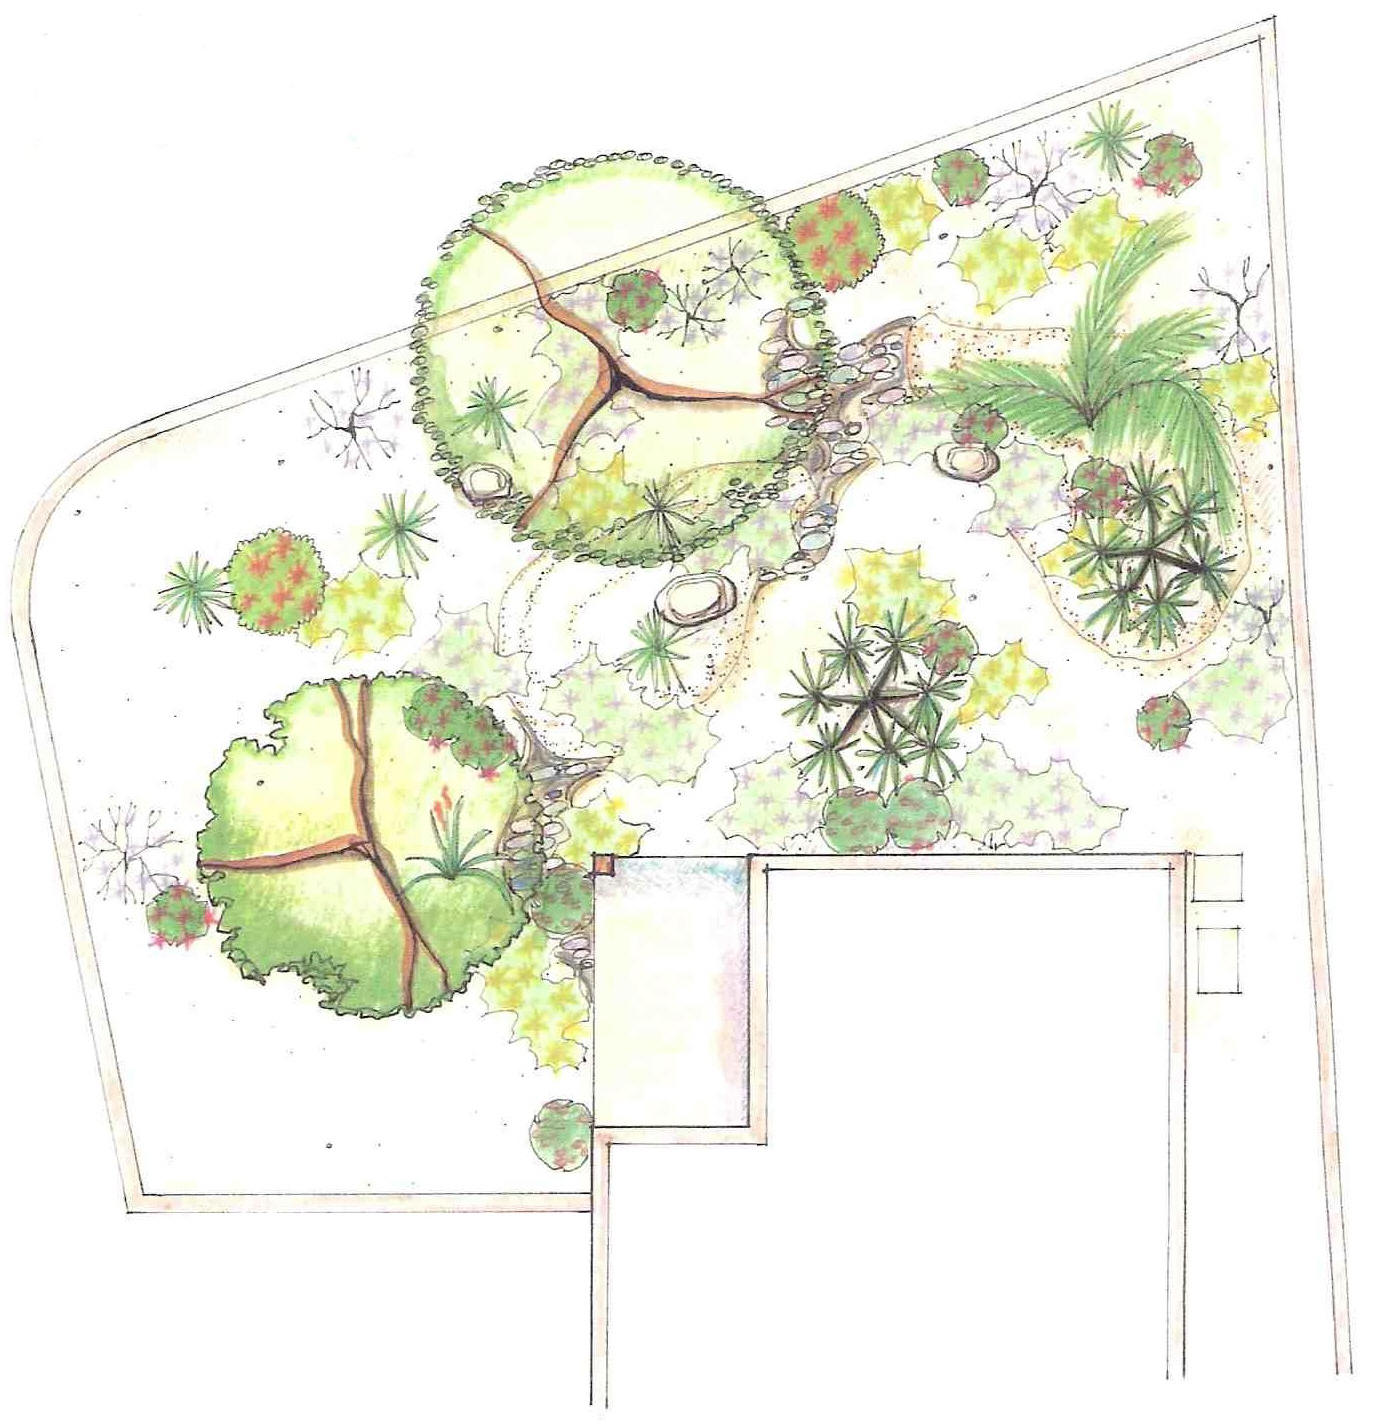 art design landscape landscape plan drawing inspiration